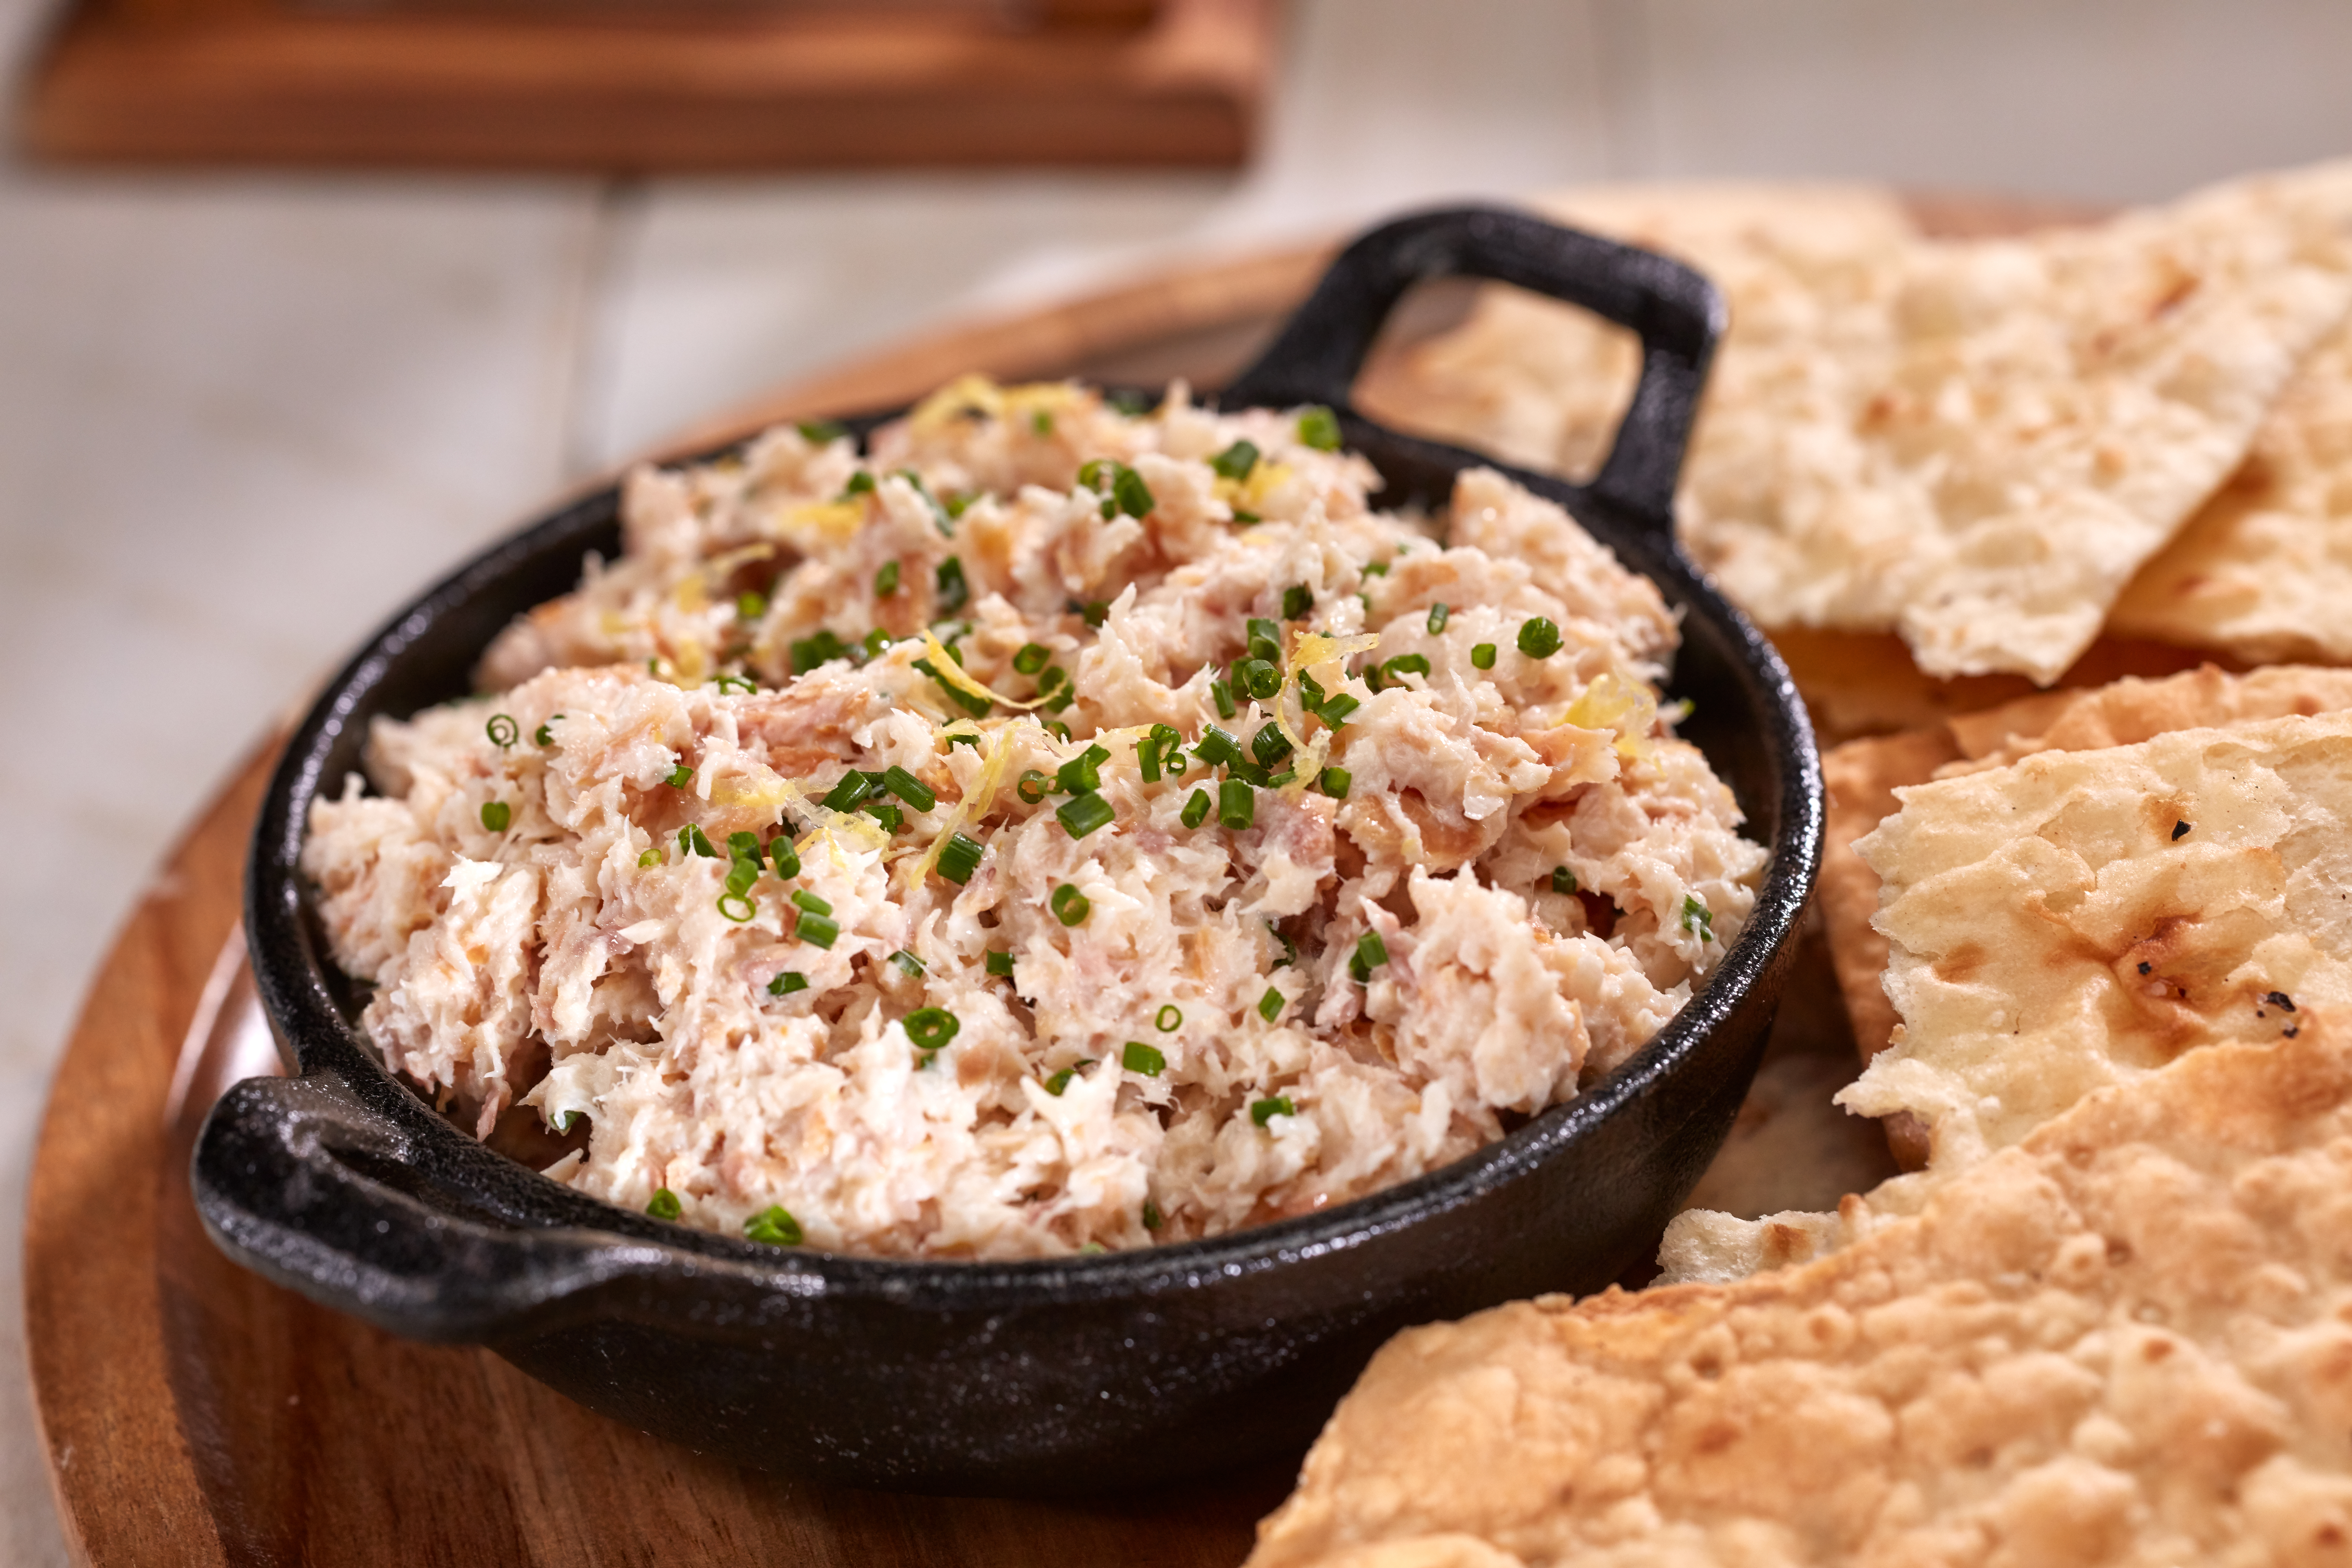 The smoked brook trout dip was served alongside thin, large crackers.